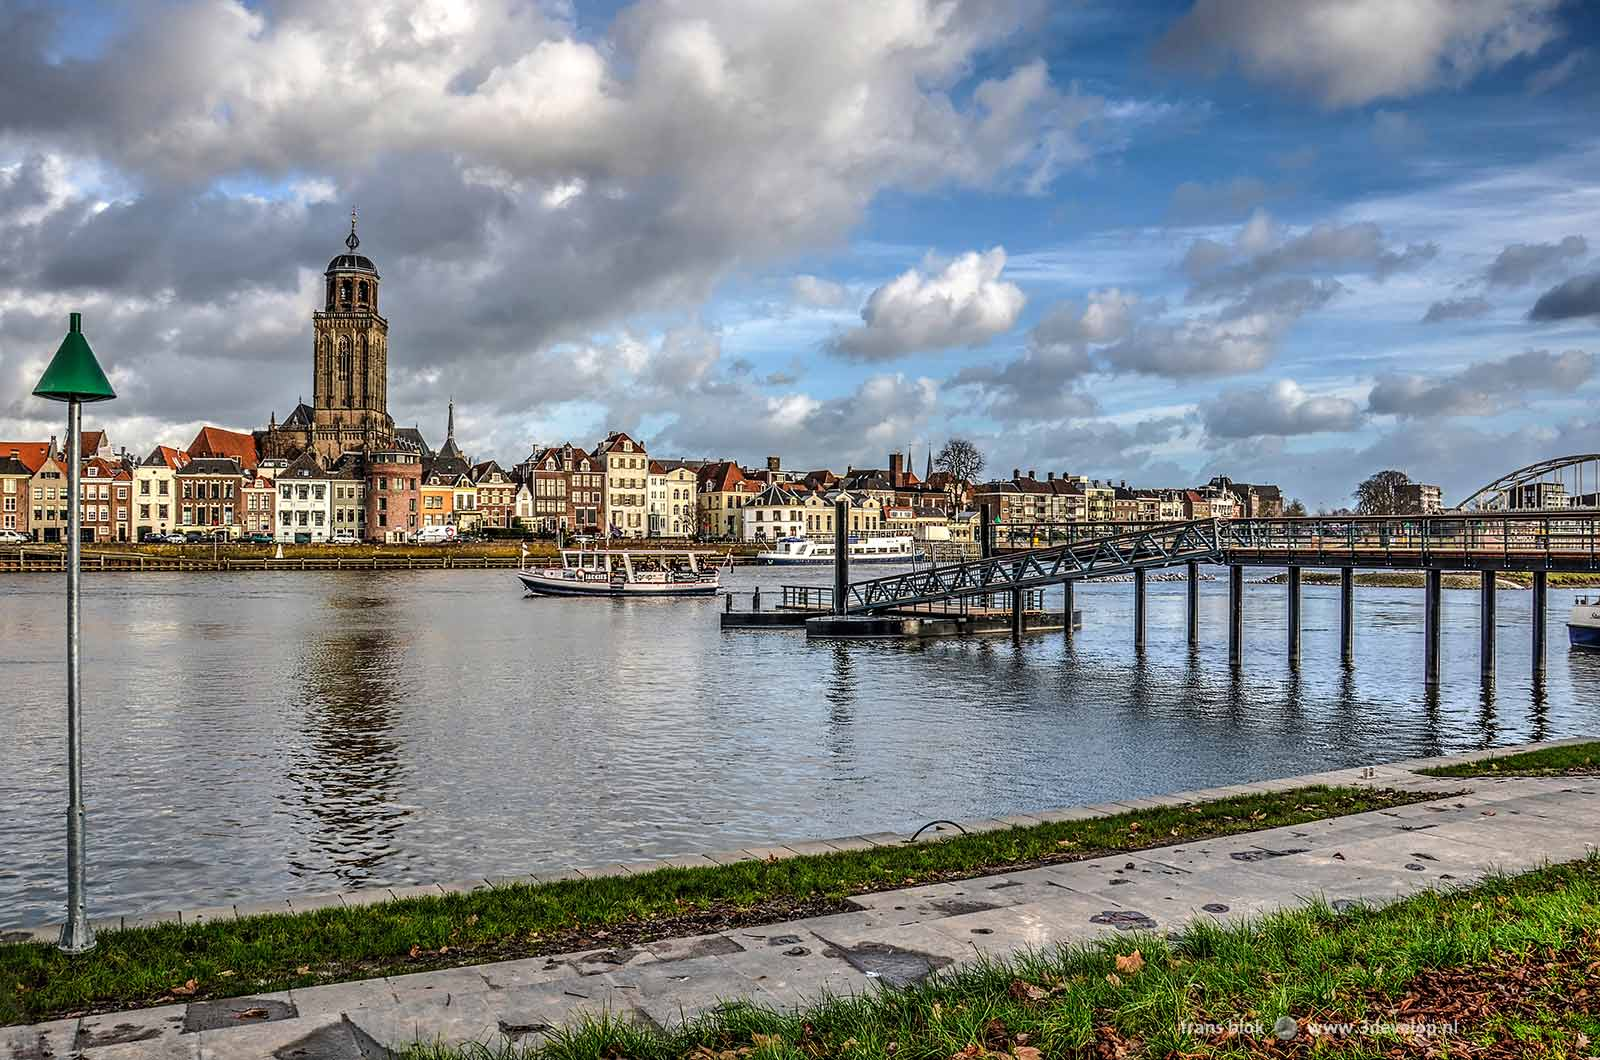 The skyline of Deventer with Saint Lebuinus church, the ferryboat and the new pontoon bridge seen from the Worp near the IJsselhotel